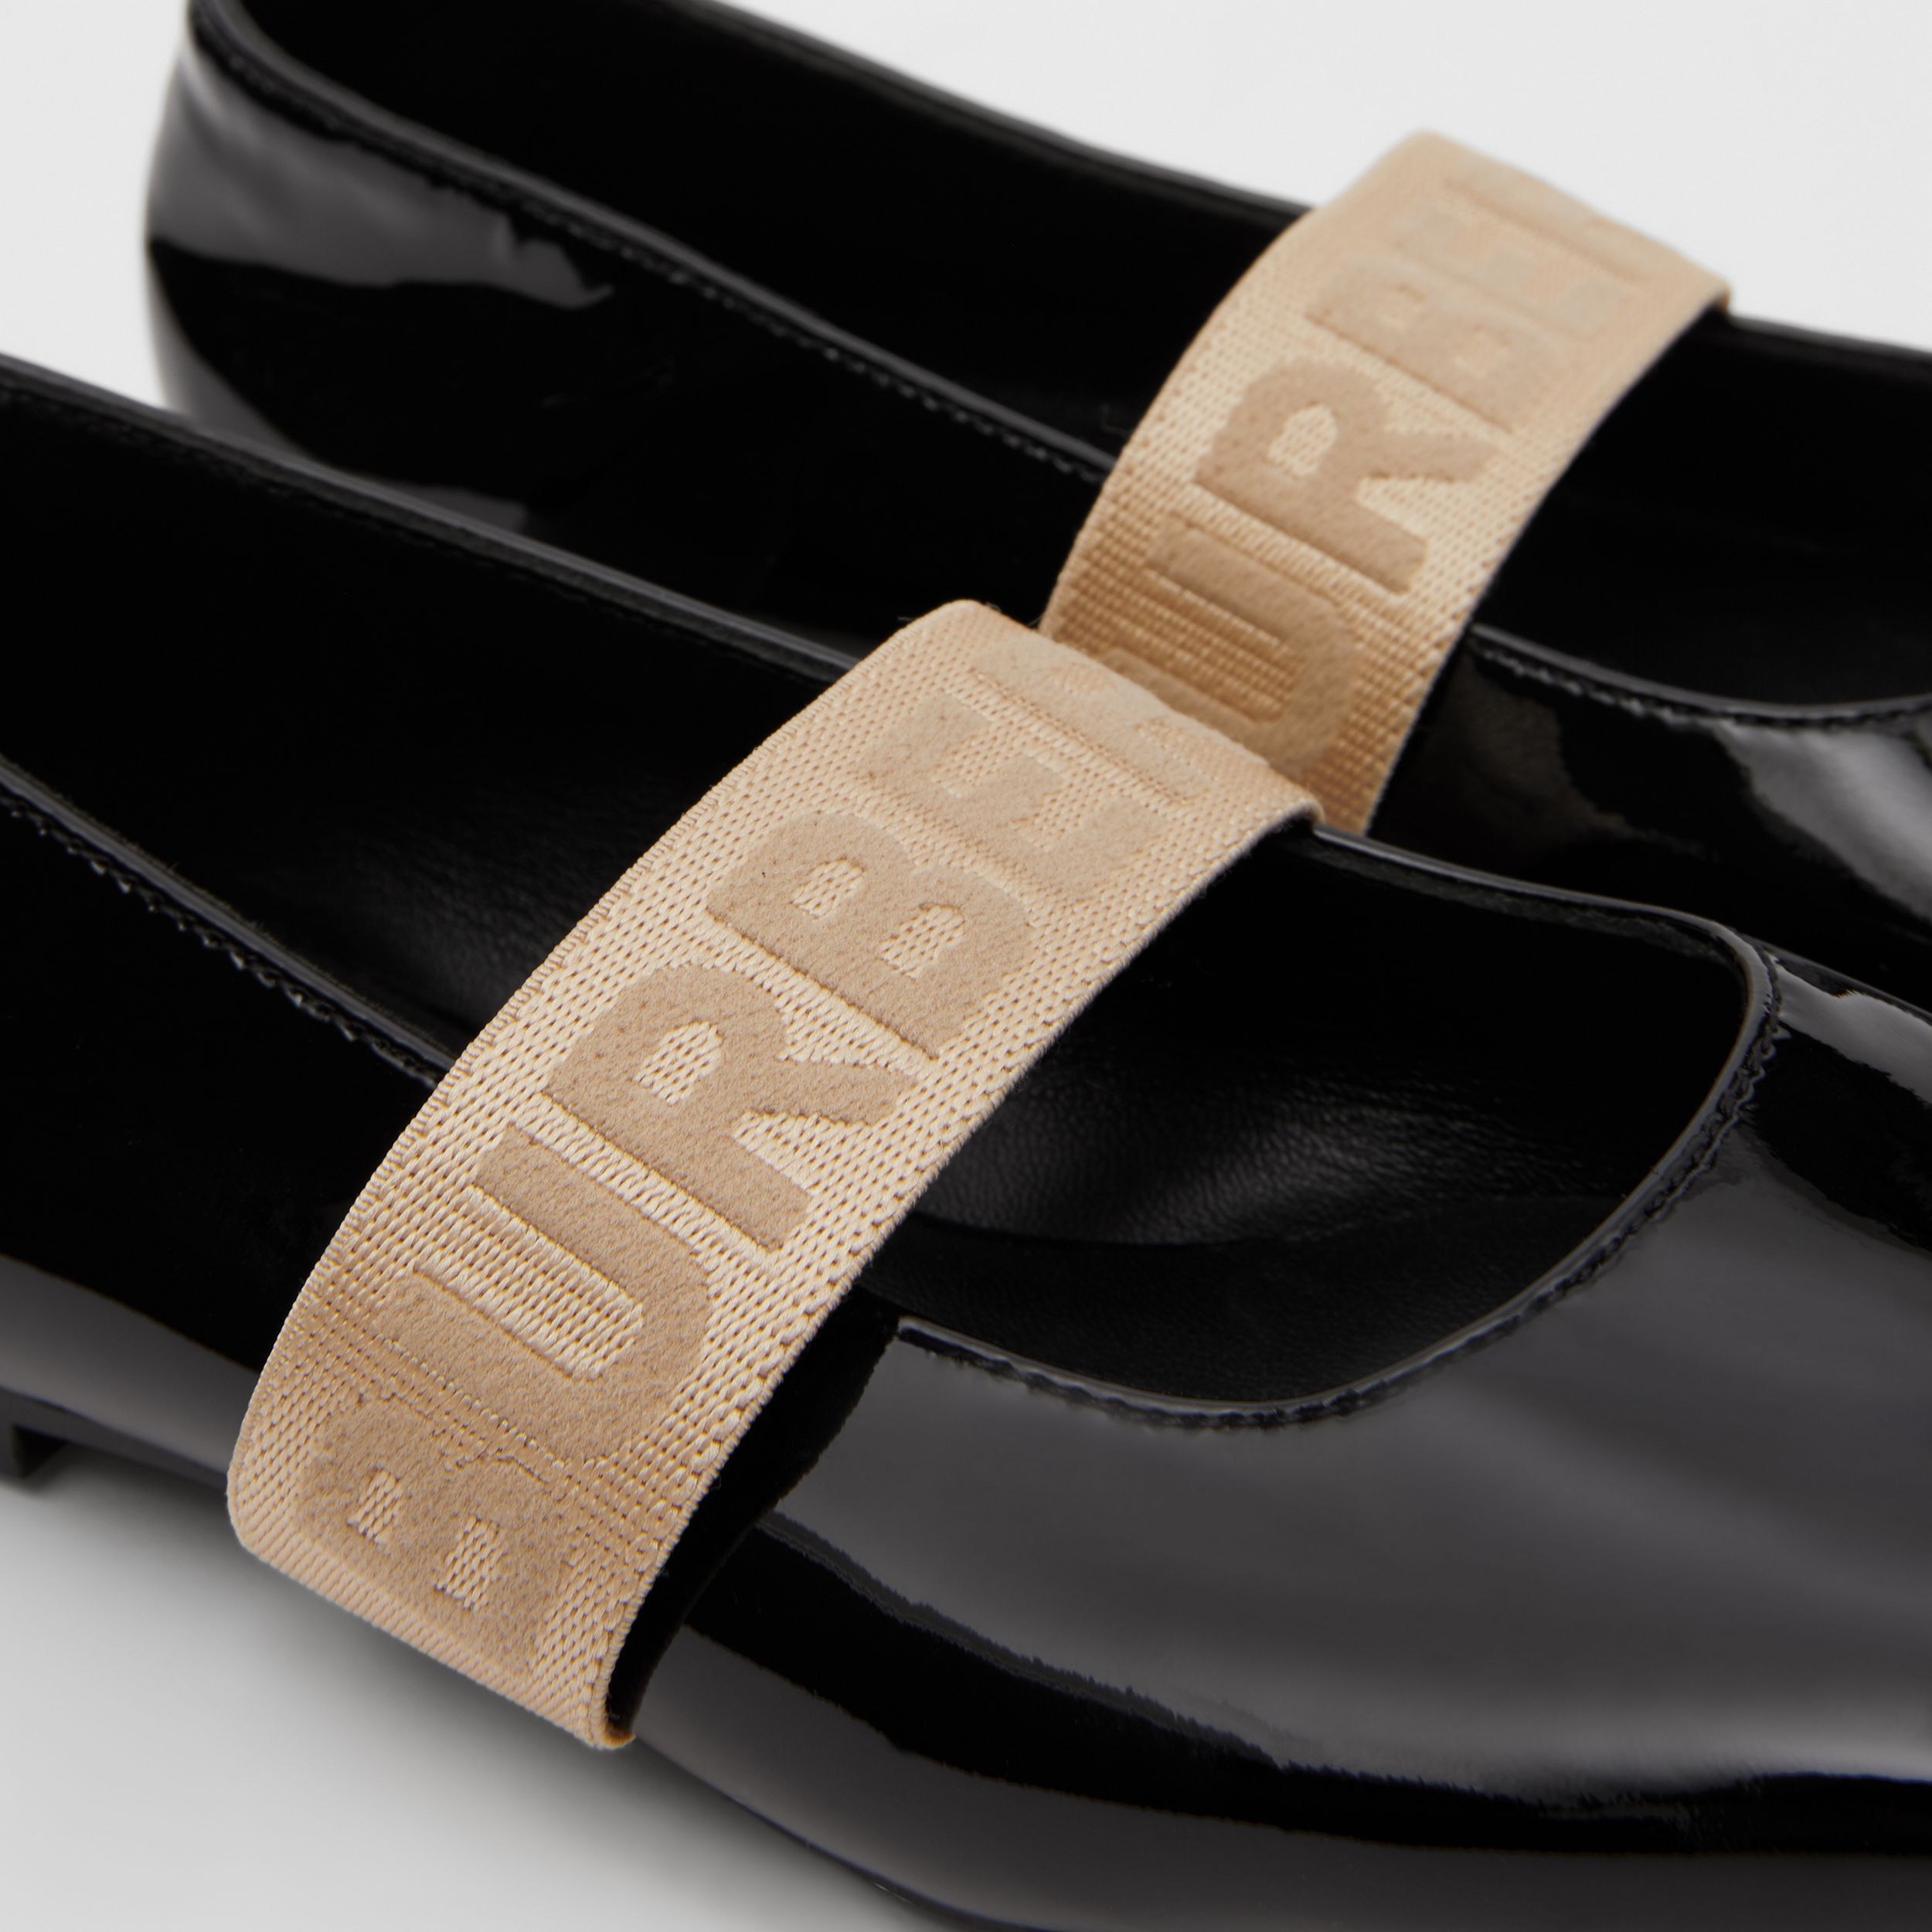 Logo Detail Patent Leather Flats in Black - Children | Burberry United Kingdom - 2